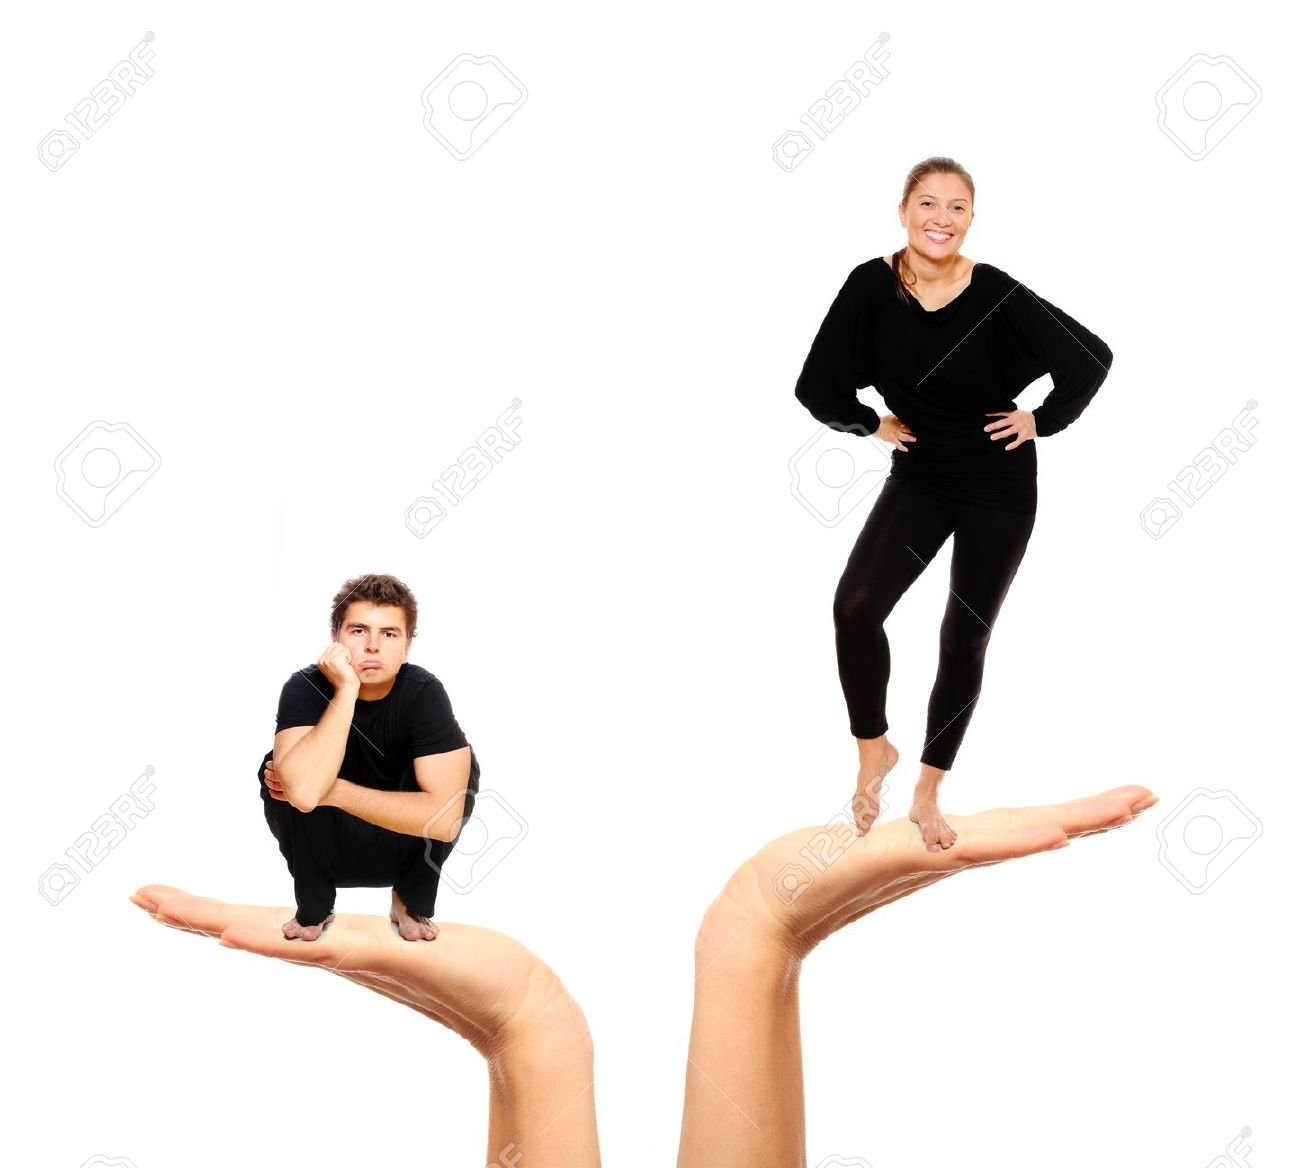 8524705-A-picture-of-a-sad-man-and-a-happy-woman-over-white-background-Stock-Photo